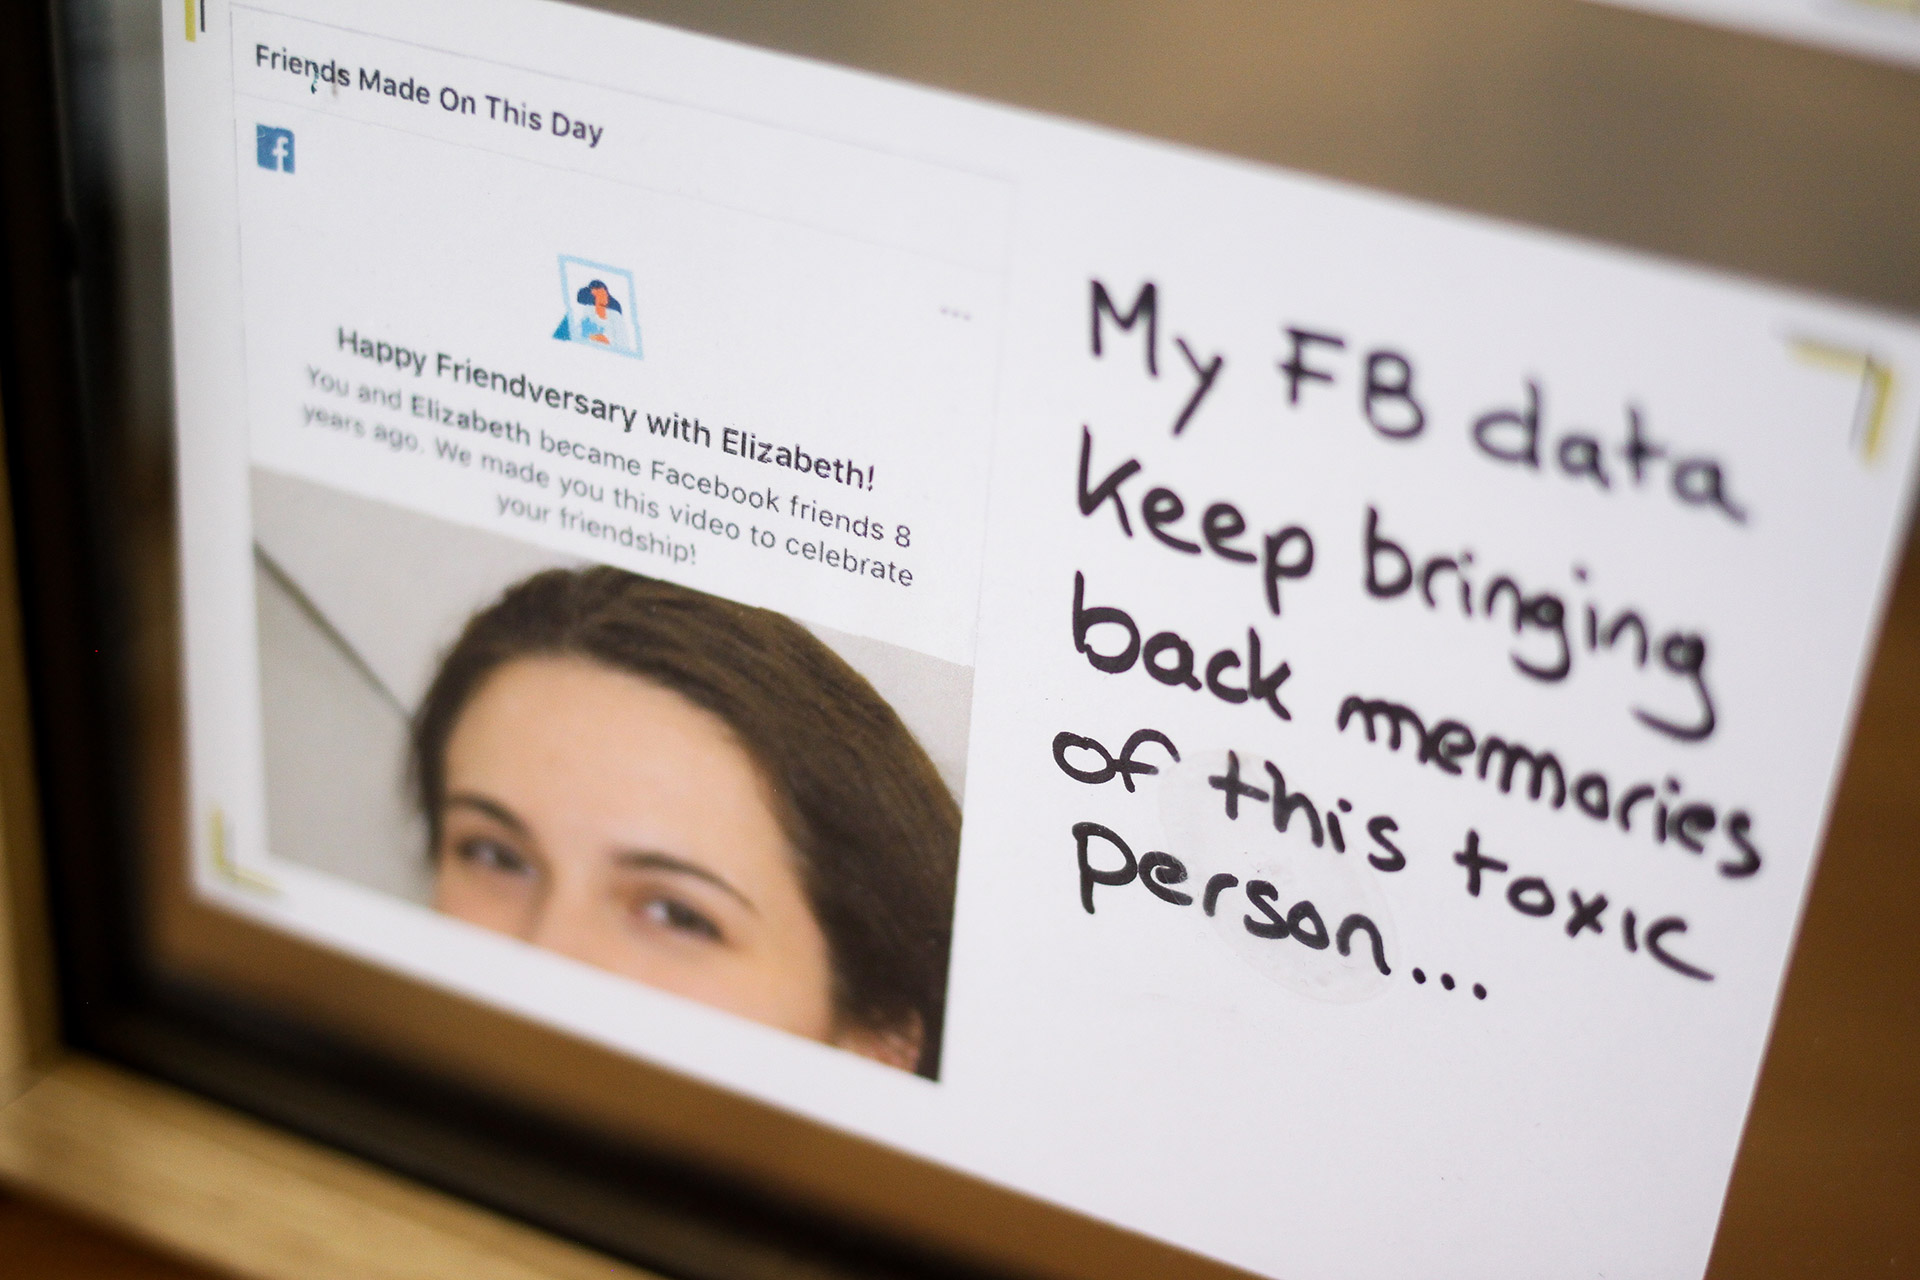 Another close-up on a card of the anti-memorial ranting against Facebook profile and data bringing back memory of a toxic person